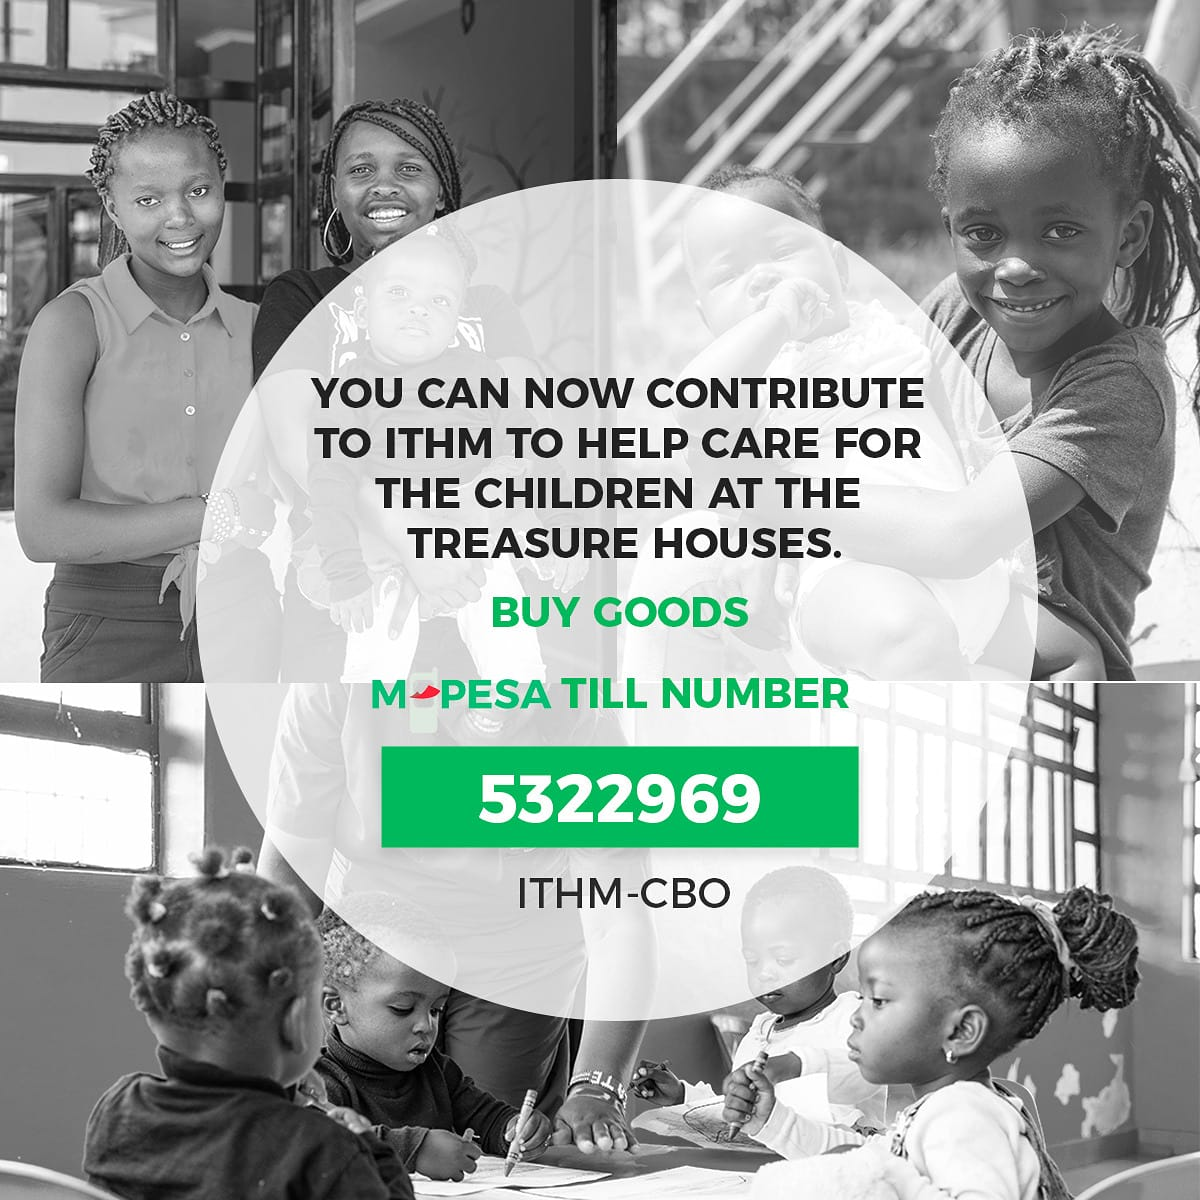 For our friends in Kenya, Here is an easy way to contribute to help raise  school fees for our 42 children.   Visit https://t.co/FeeNr7PVoY and learn more about our children.   Like and share to help spread awareness.   #ithm #schoolfees  #treasurehouse #donations #newbeginings https://t.co/xEqElIyje4